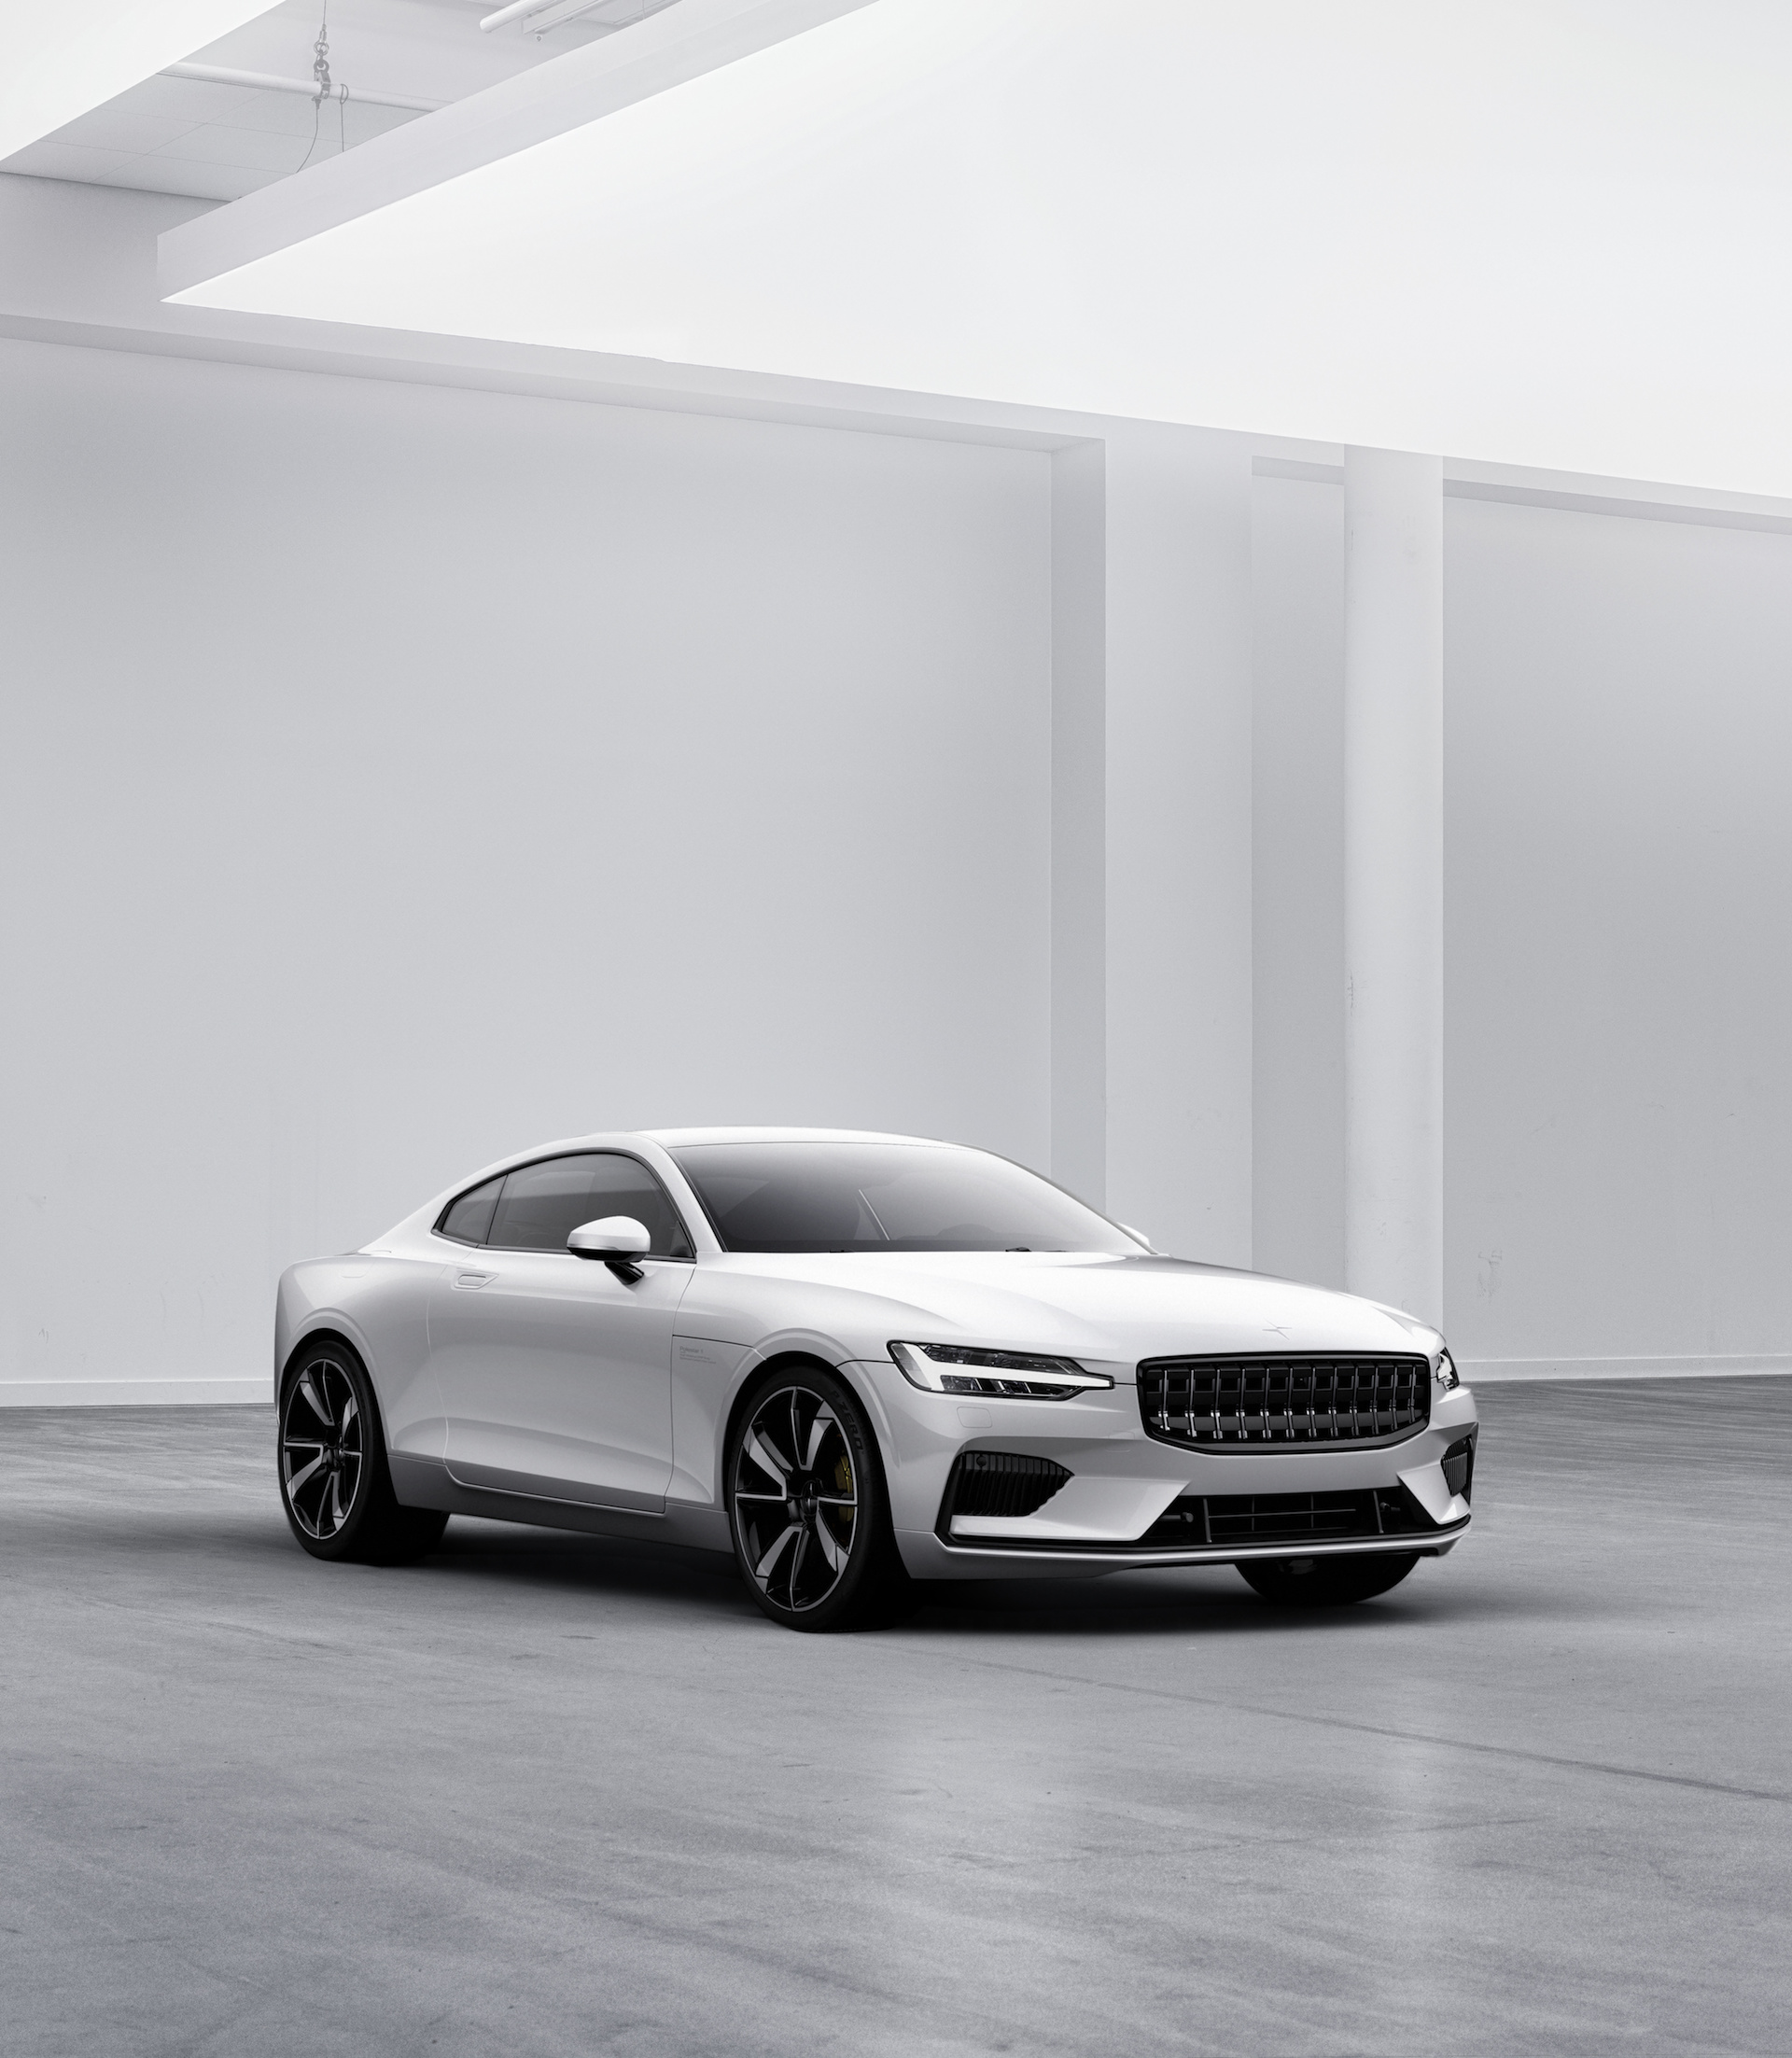 Volvo's New Polestar Electric-car Brand To Launch 600-hp